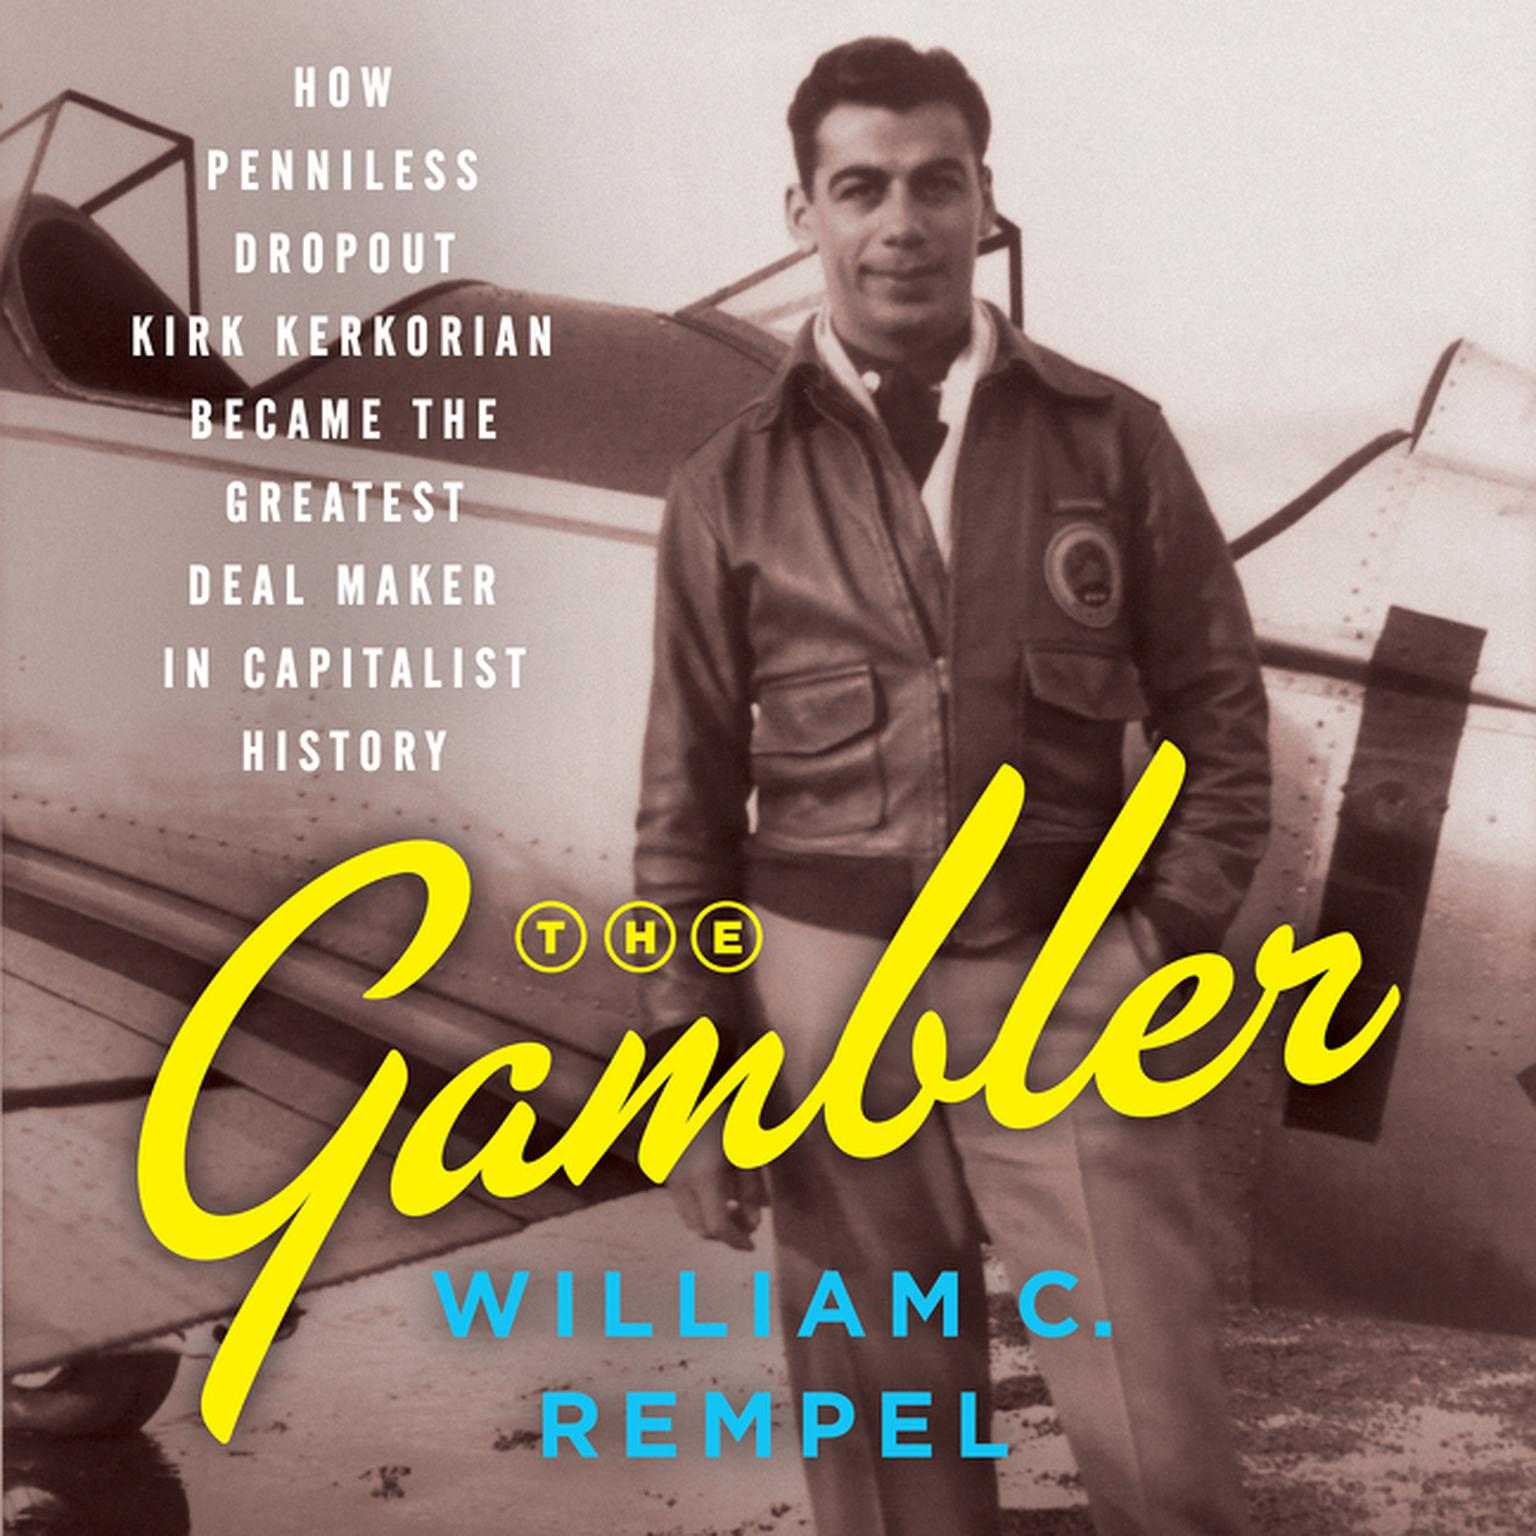 Printable The Gambler: How Penniless Dropout Kirk Kerkorian Became the Greatest Deal Maker in Capitalist History Audiobook Cover Art